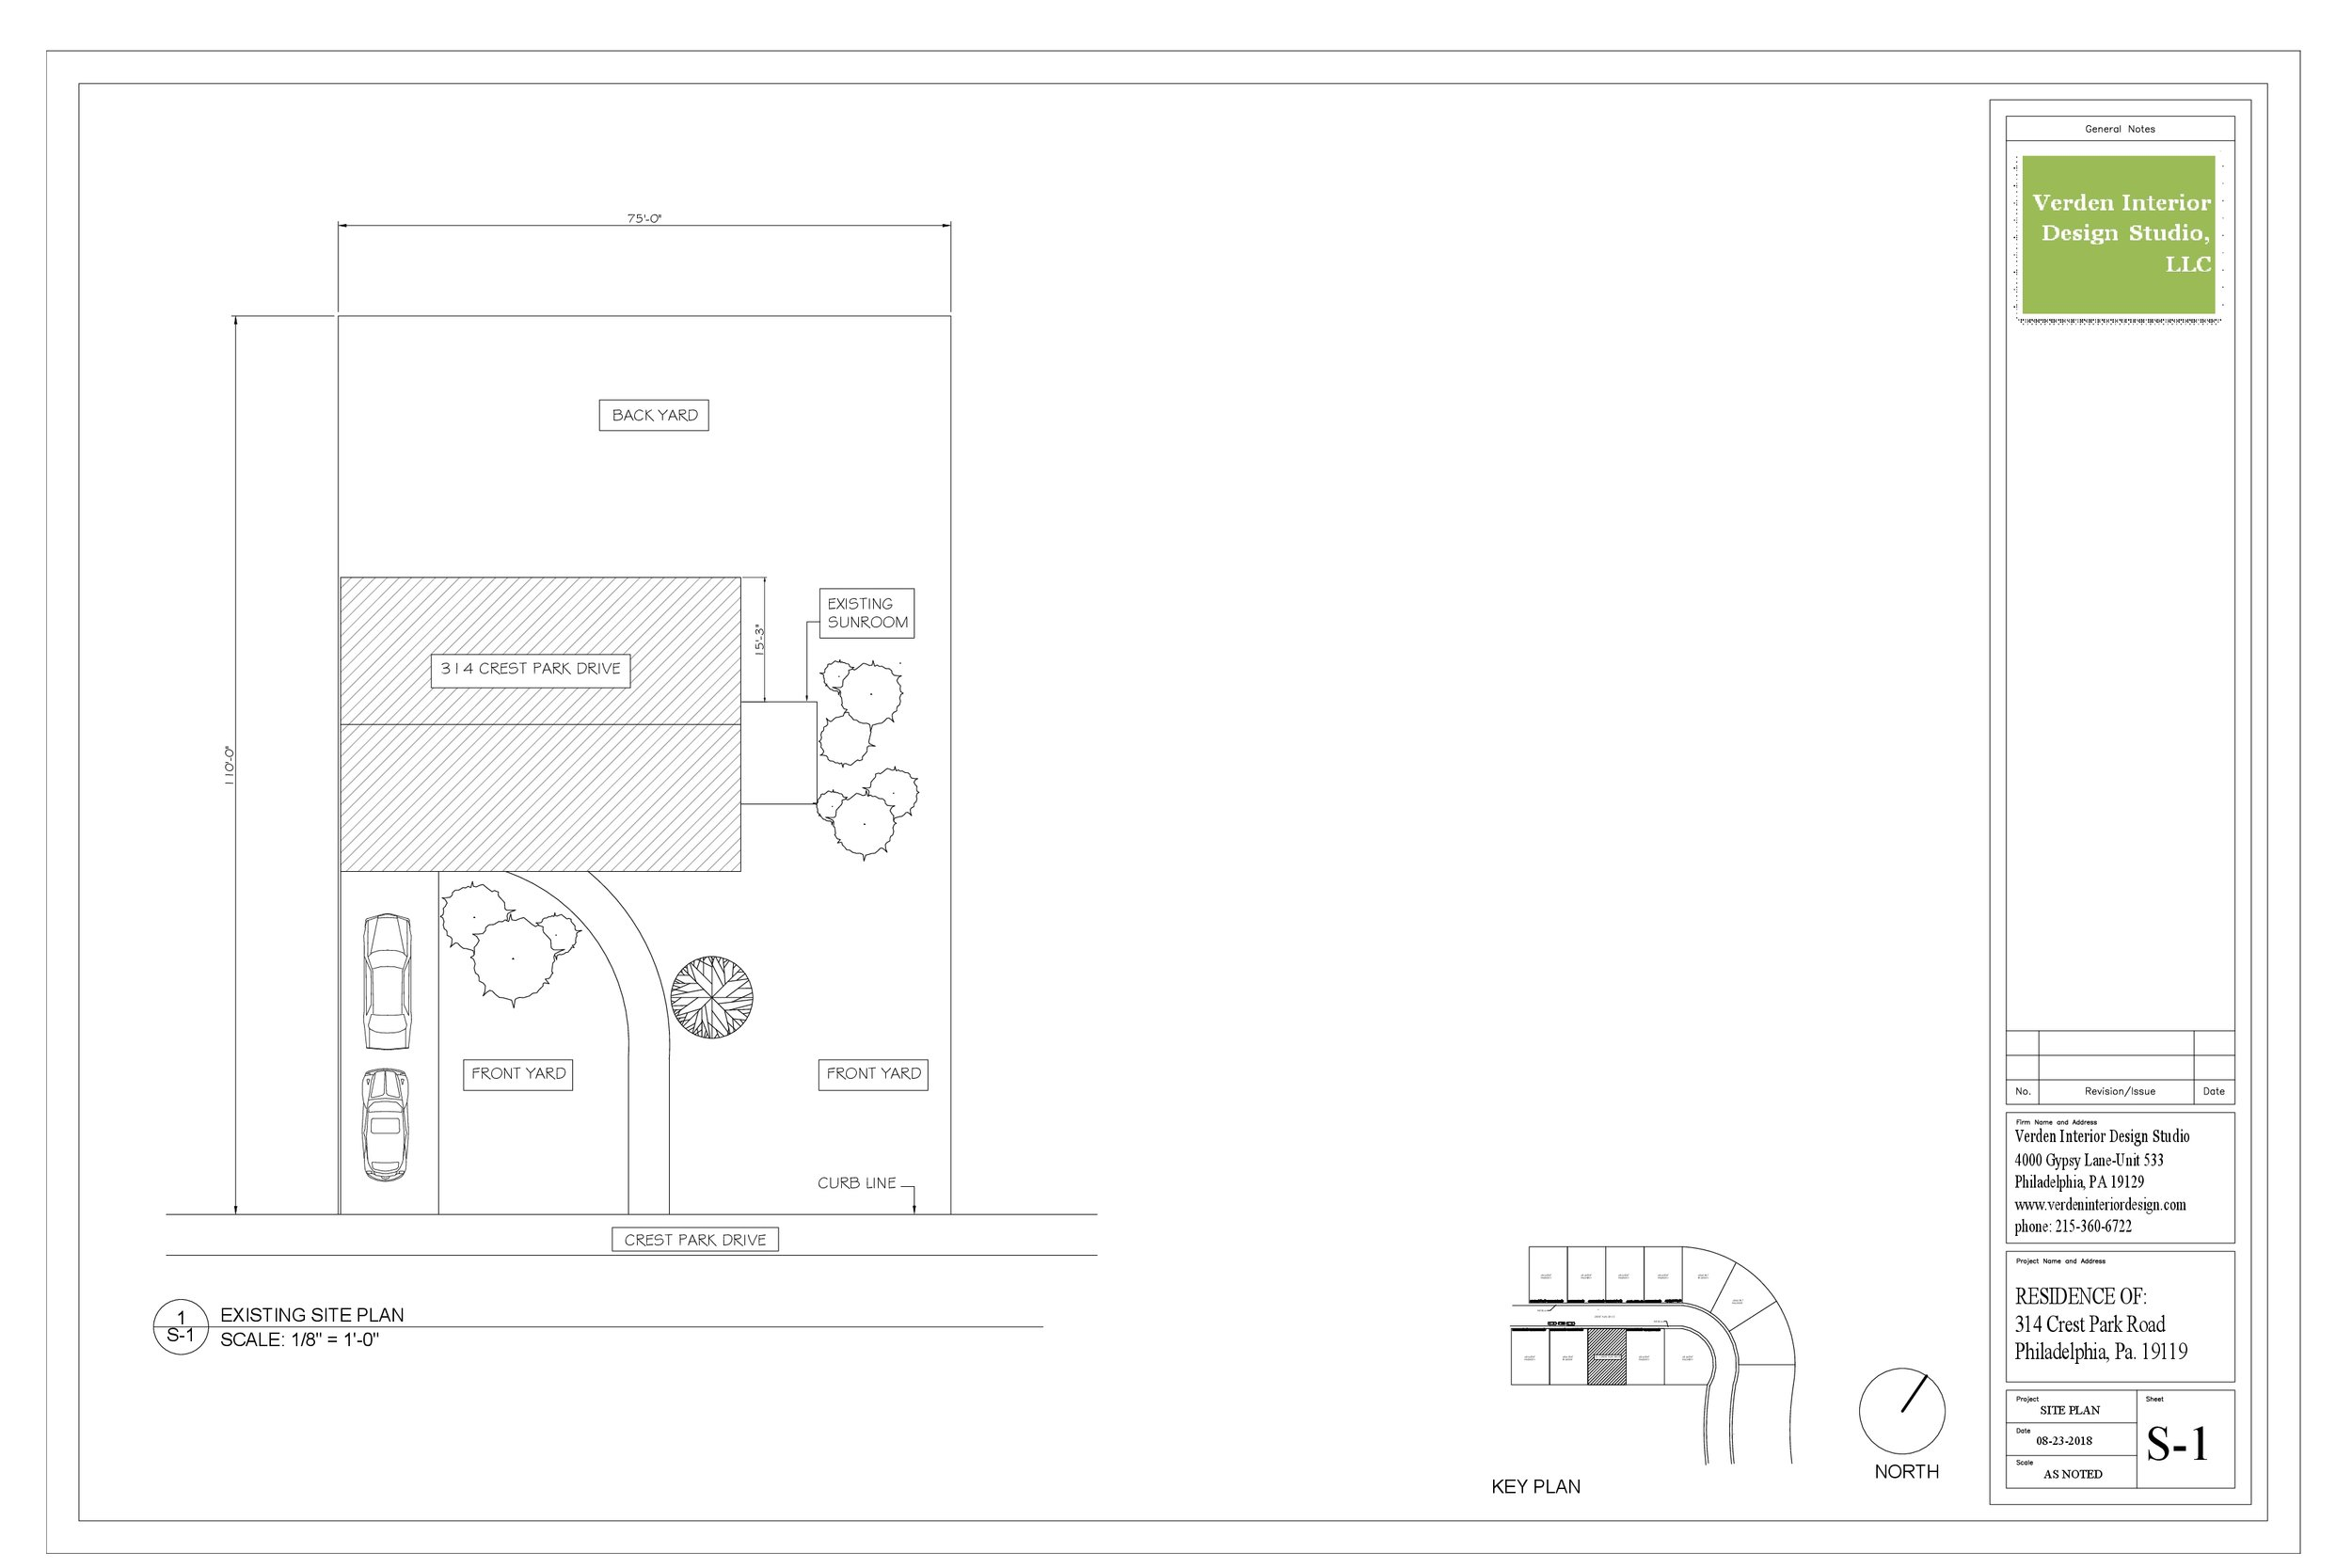 314 Crest Park Road_drawings_S-1_final.jpg